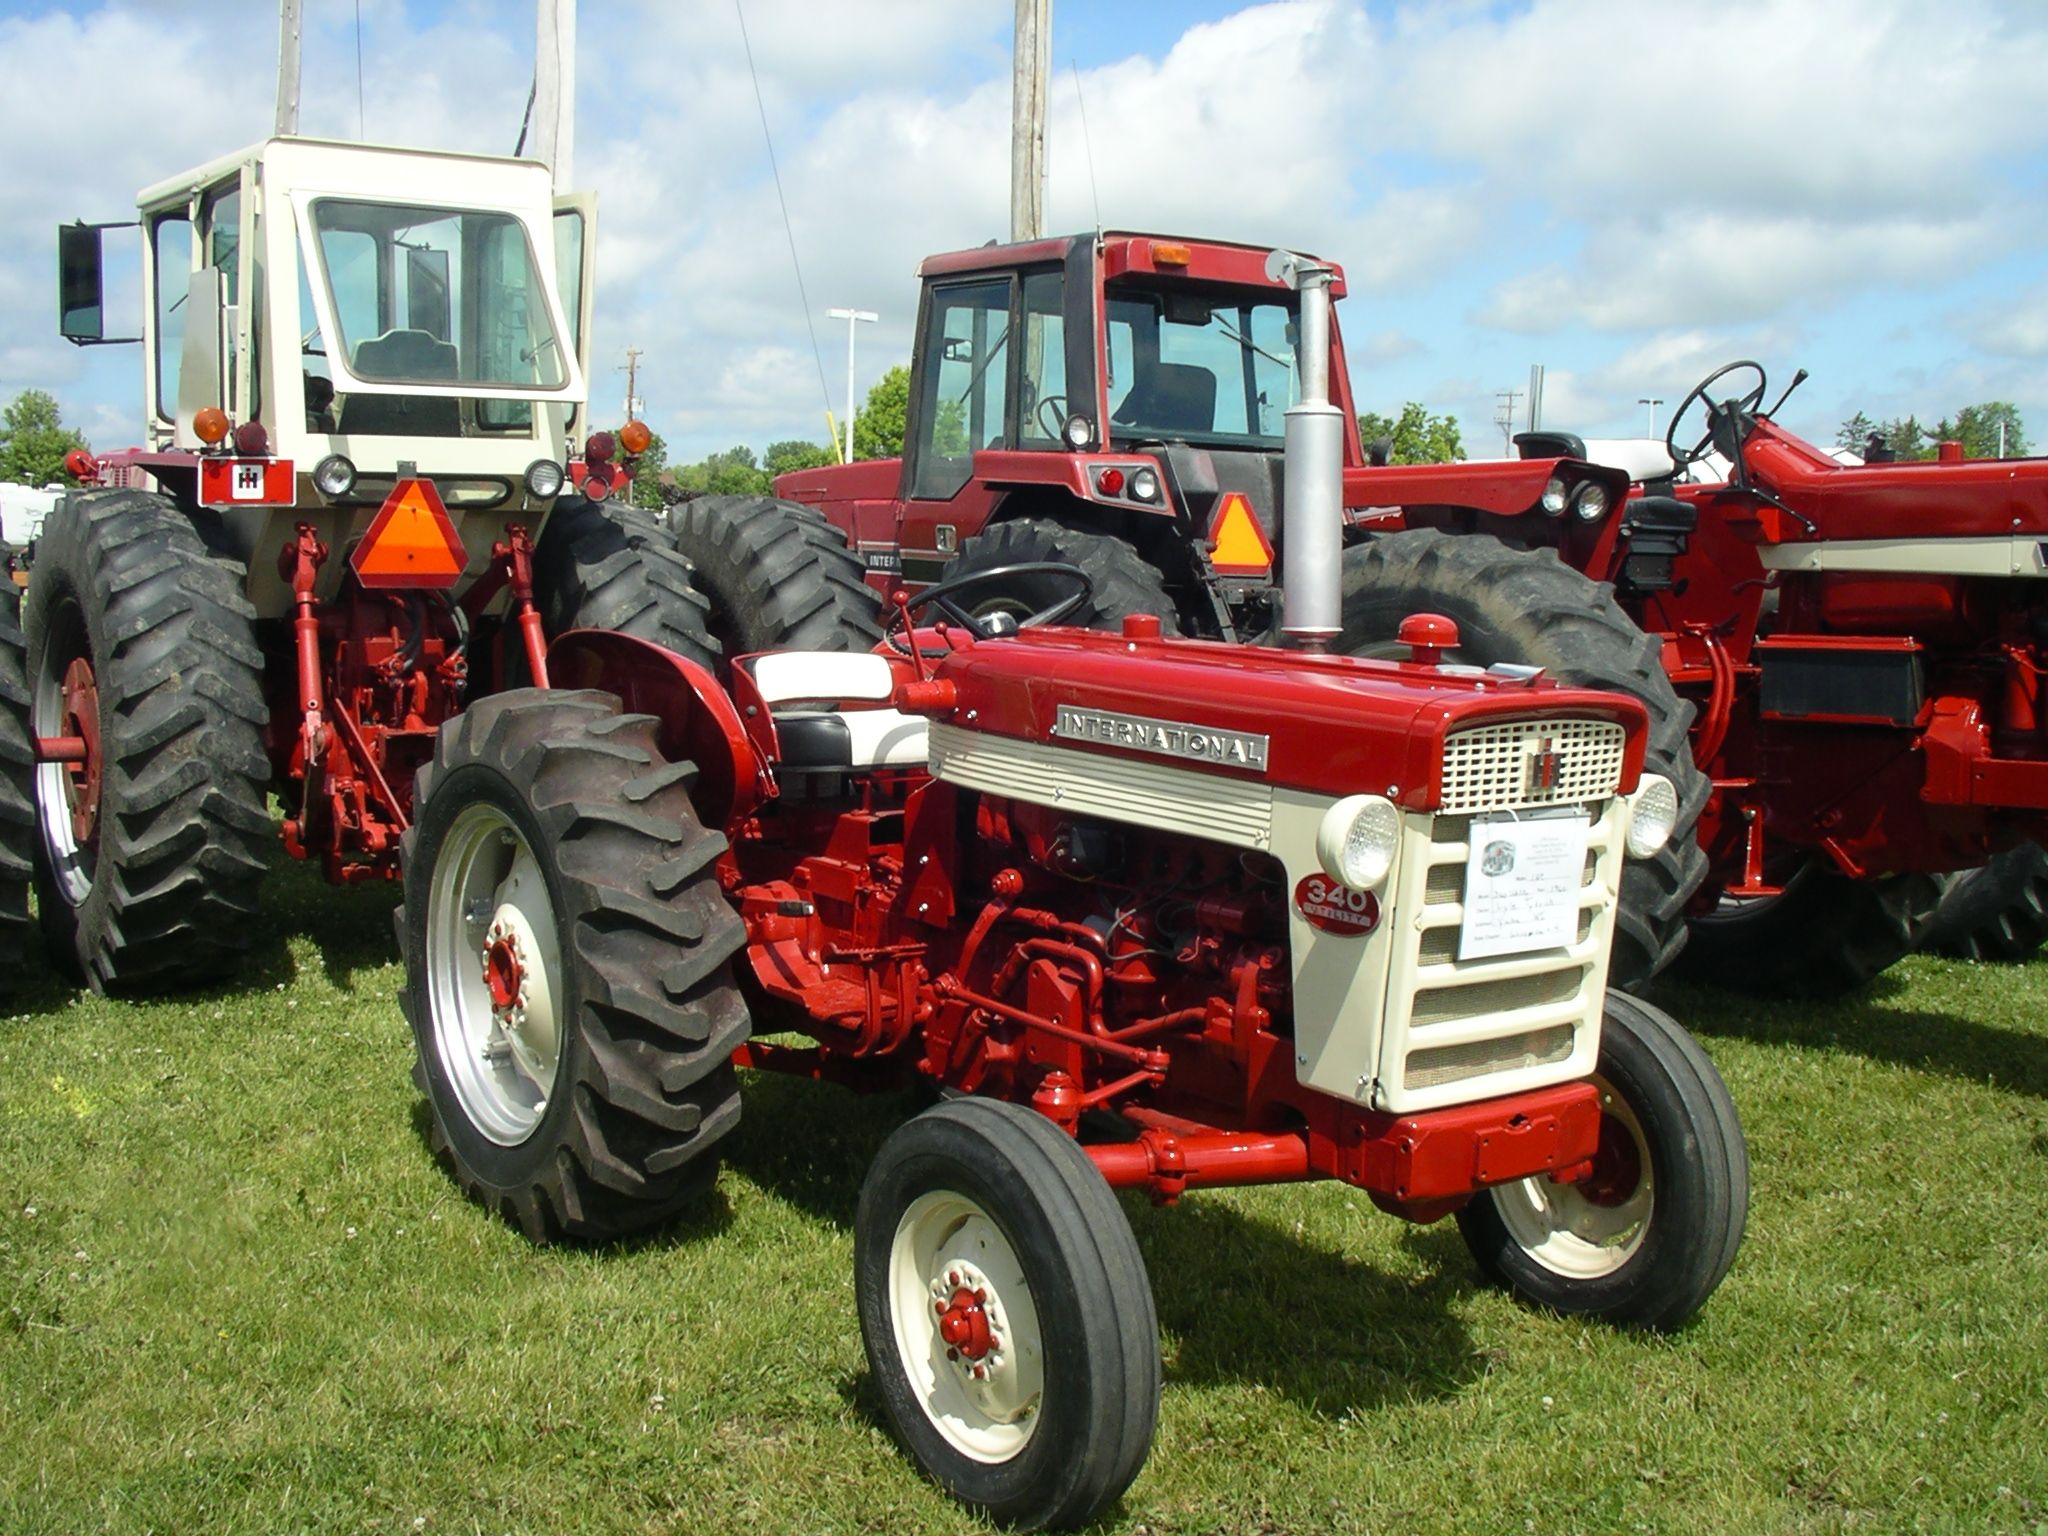 Ih 340 Utility Tractor Parts : Ih utility red power round up pinterest